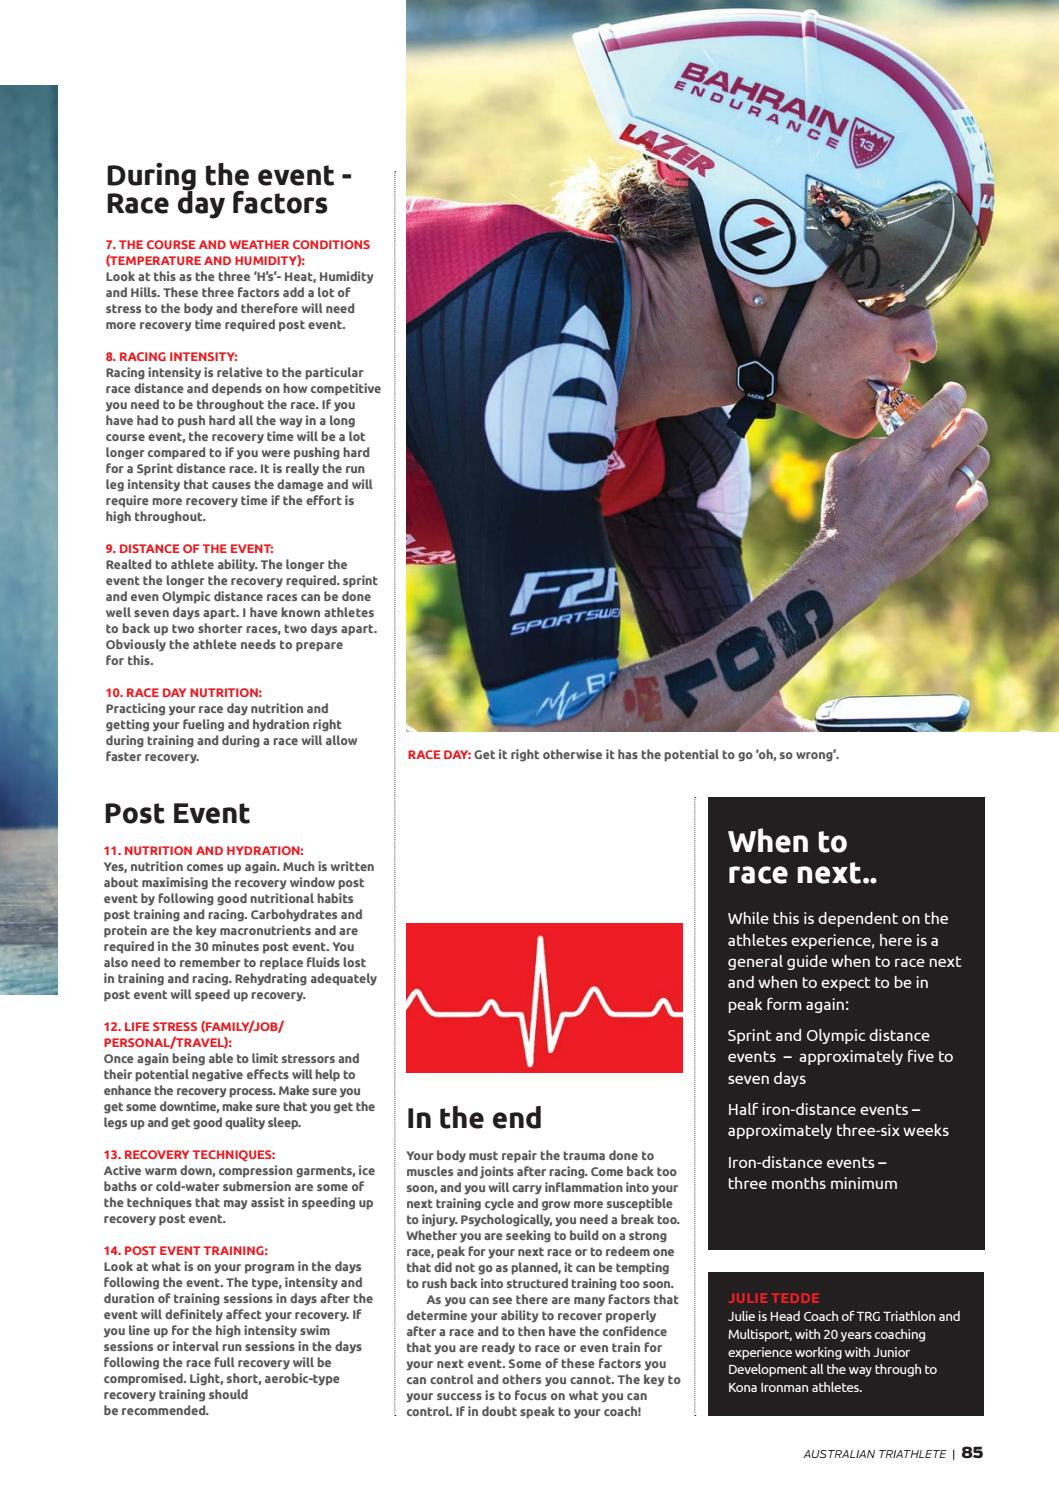 946ebbecb5 Australian Triathlete Magazine - 2016 Kona Souvenir Edition by Publicity  Press - issuu